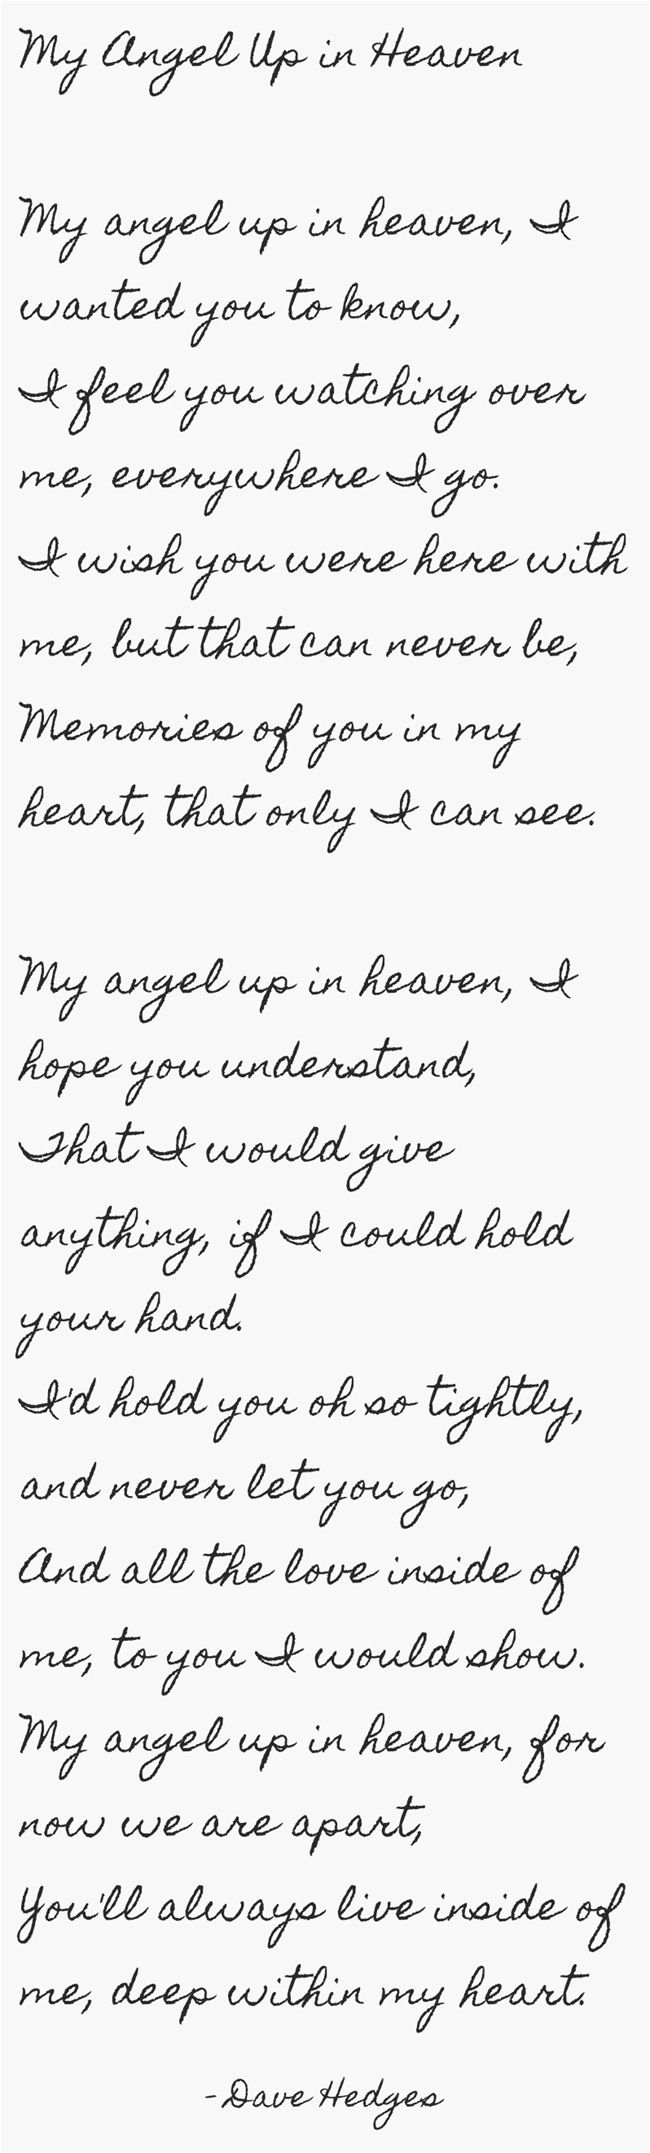 Missing My Mom In Heaven Quotes Best 25 Mom In Heaven Ideas On Pinterest  Missing Mom In Heaven